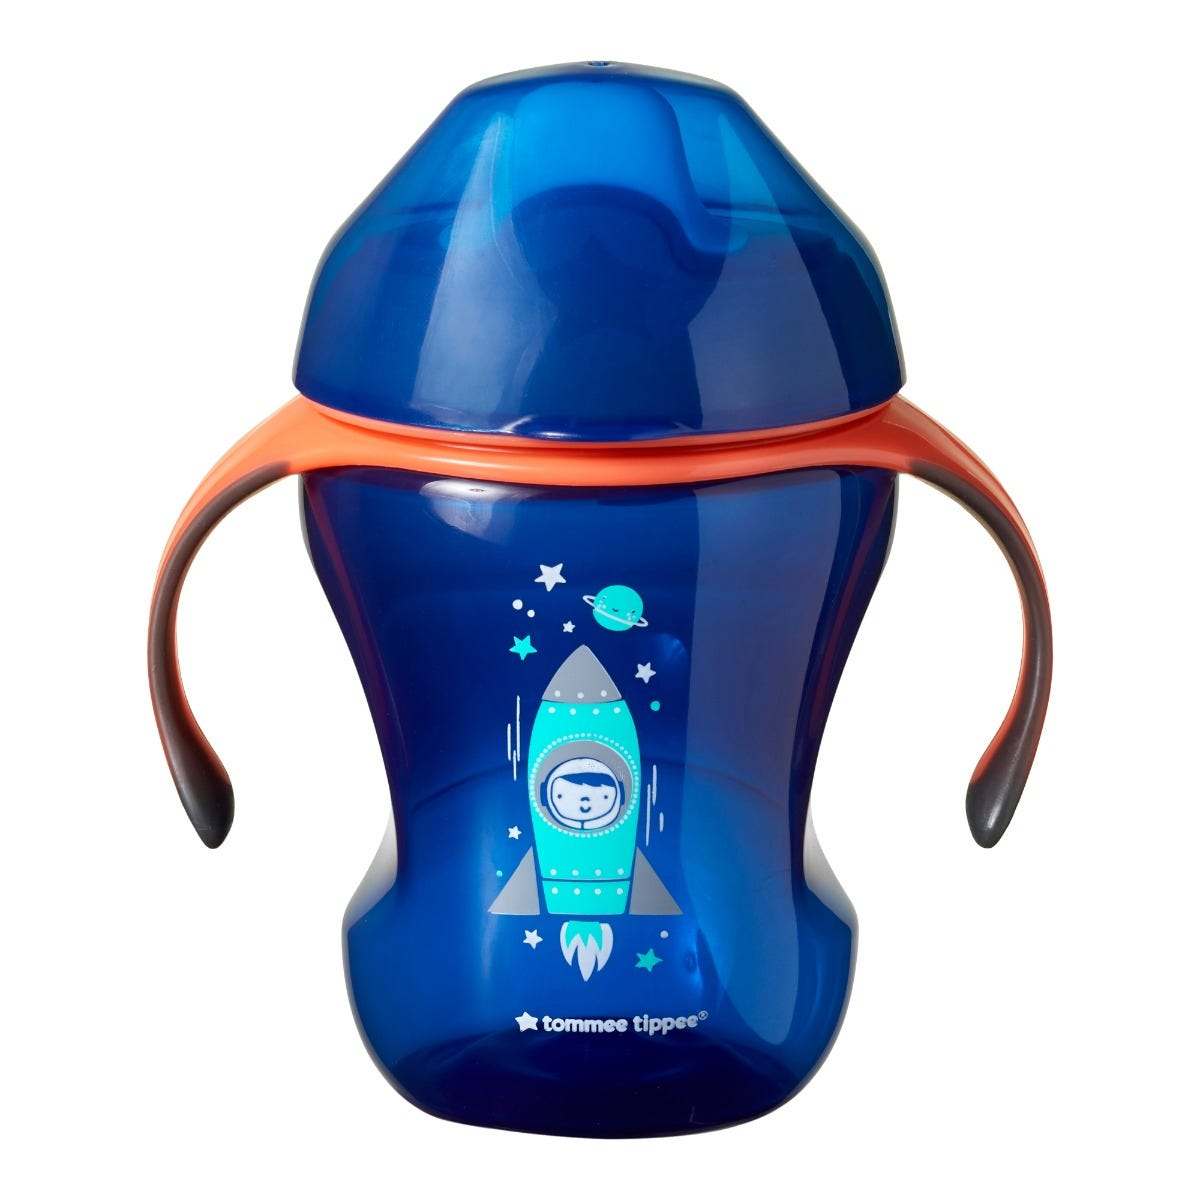 Trainer-sippee-cup-in-royal-blue-with-space-kid-design